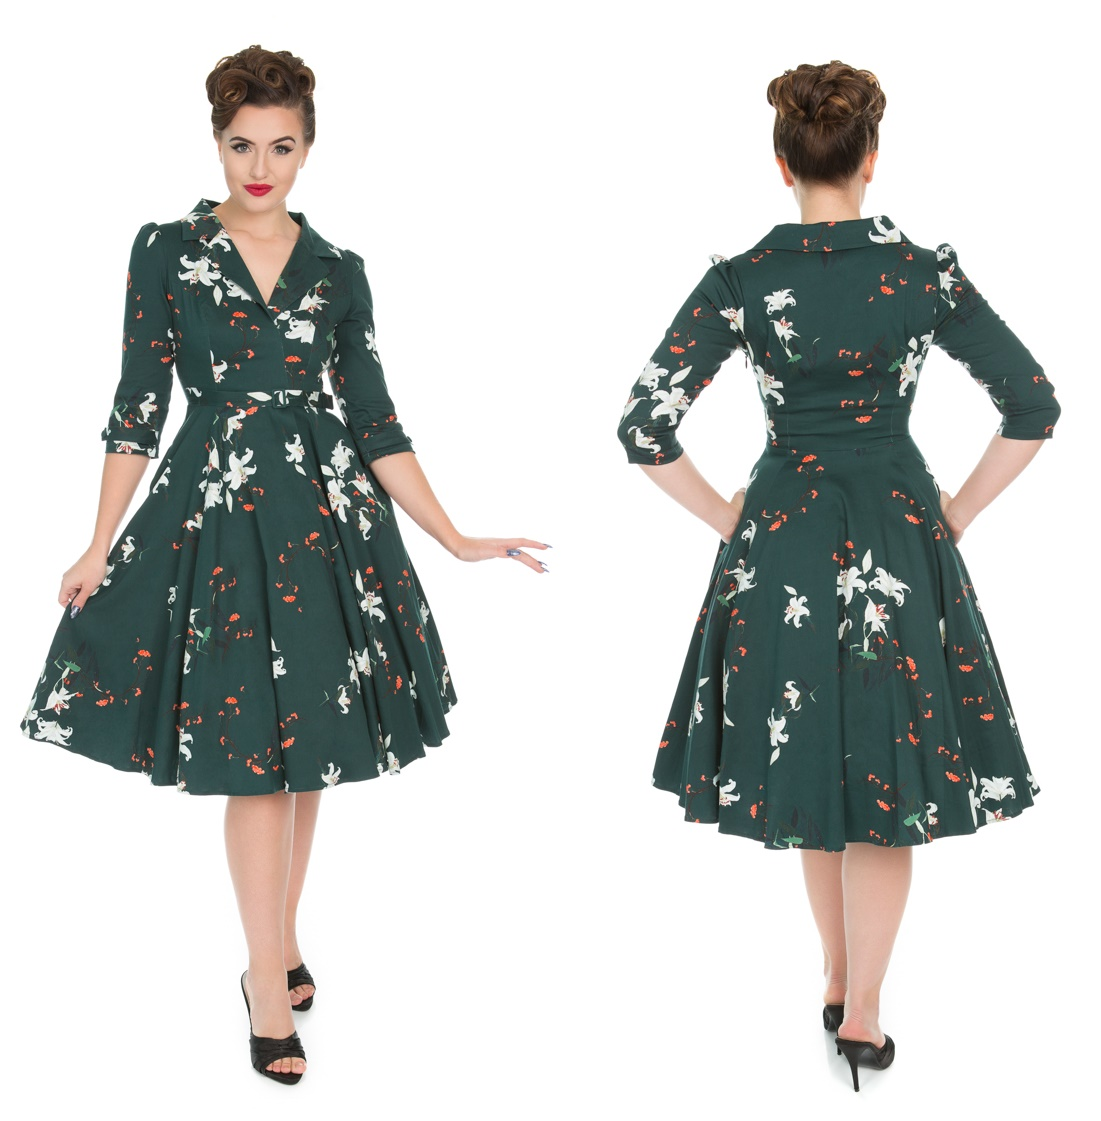 2e328d0b51e4 Rock n Roll Kleid Blumen Floral Swing Dress - Heart&Roses bei Gothic  Onlineshop - www.the-clash.de